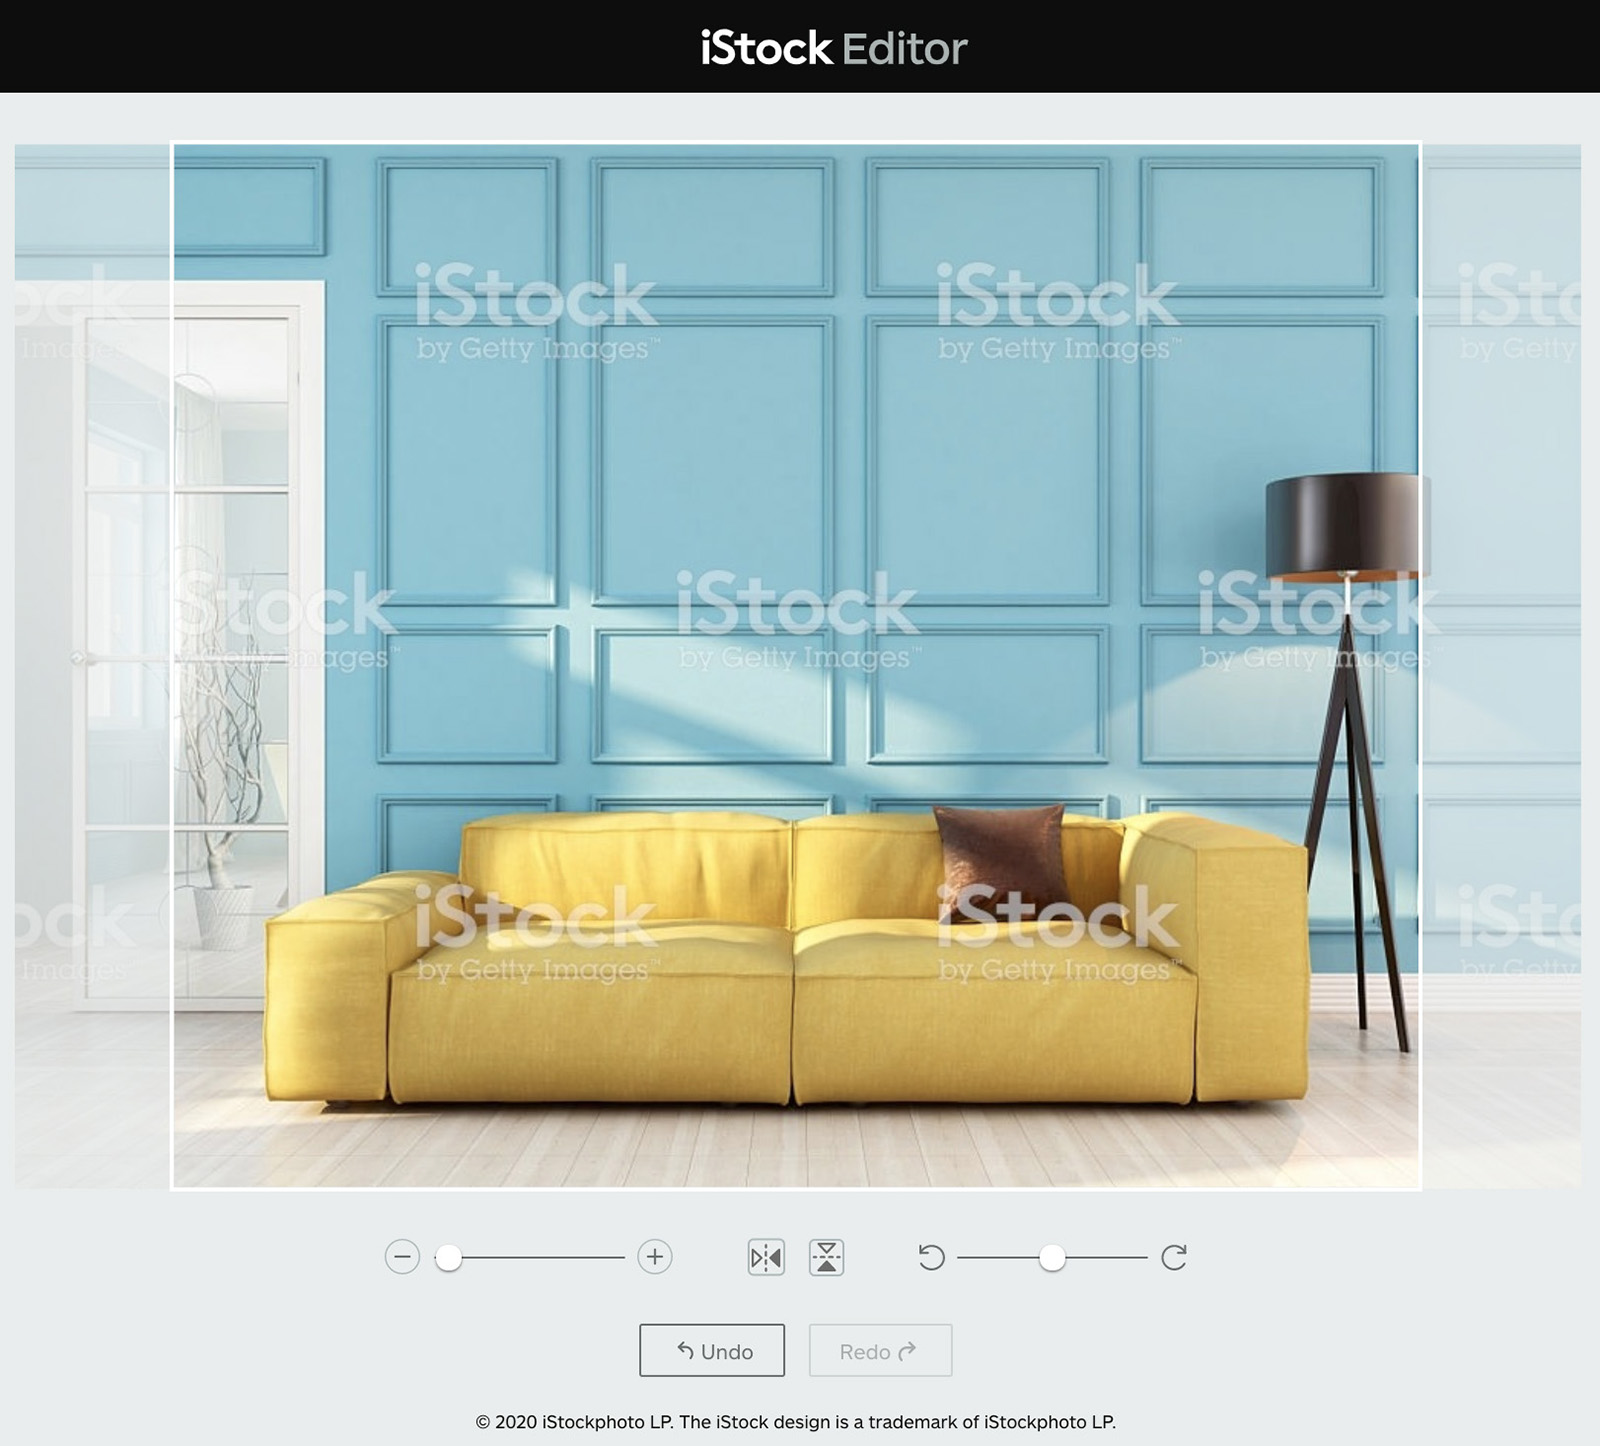 Illustration of how to resize an image of a yellow couch in a colorful living room